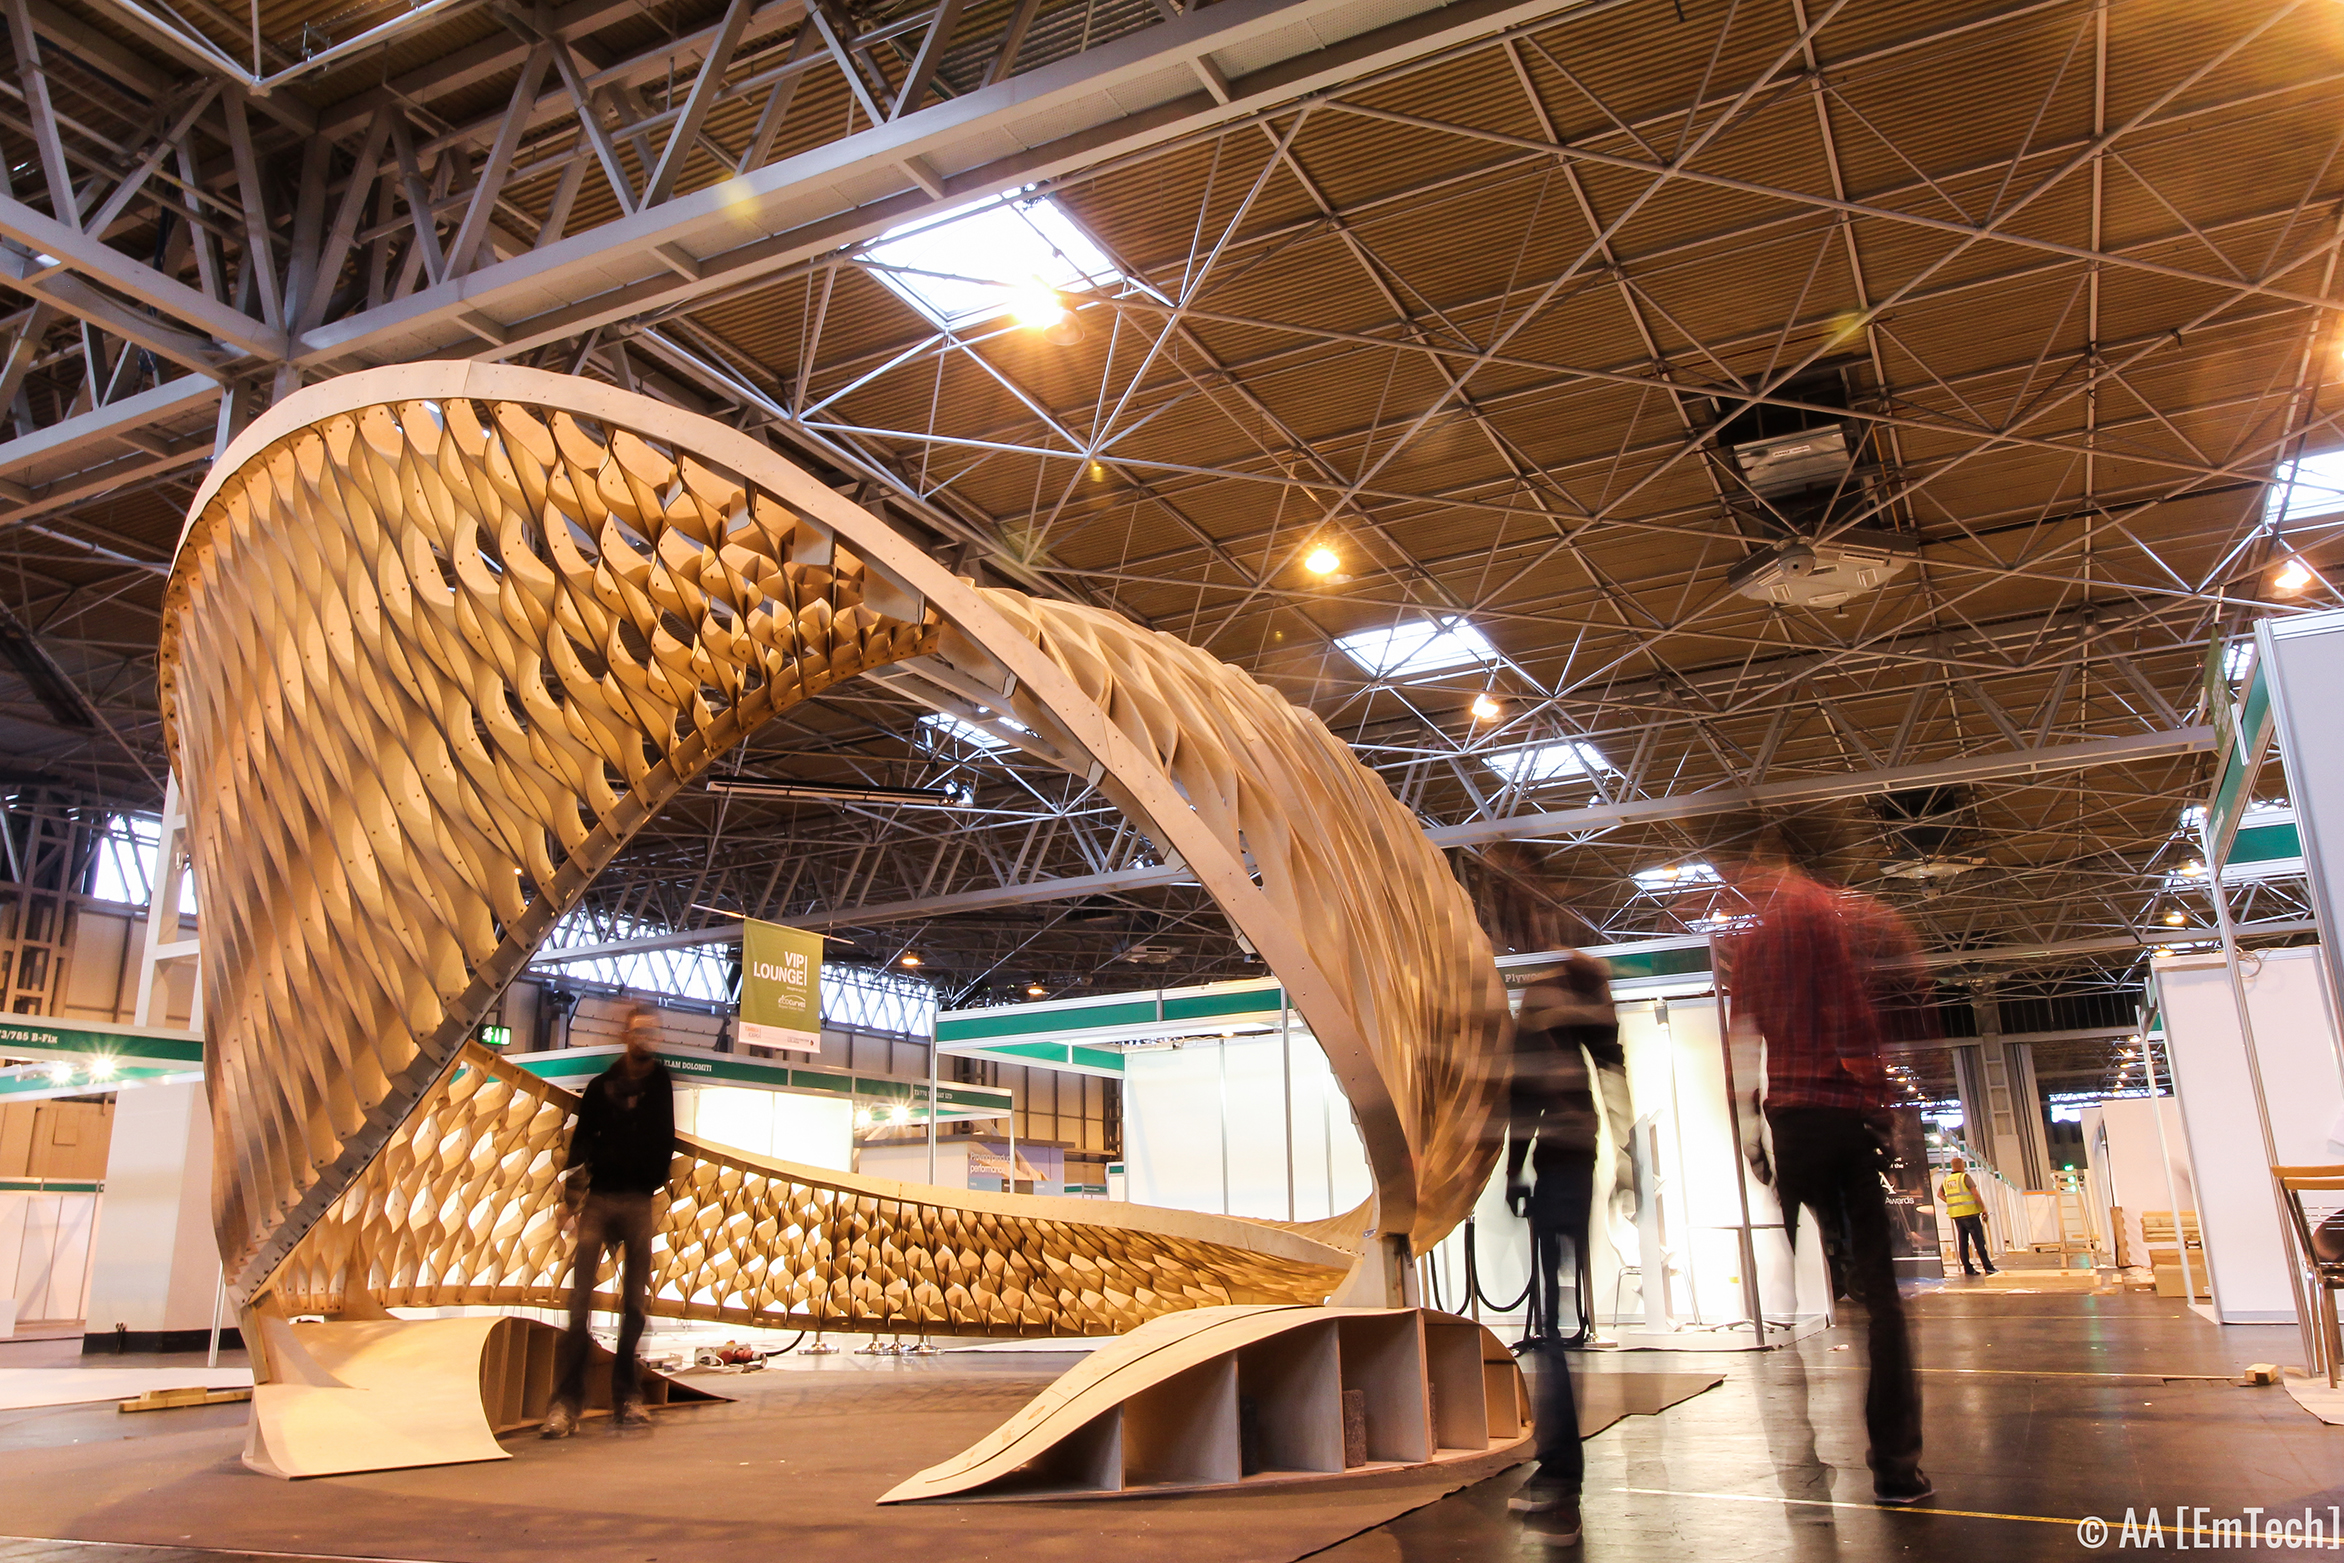 The TWIST @ Timber EXPO 2015